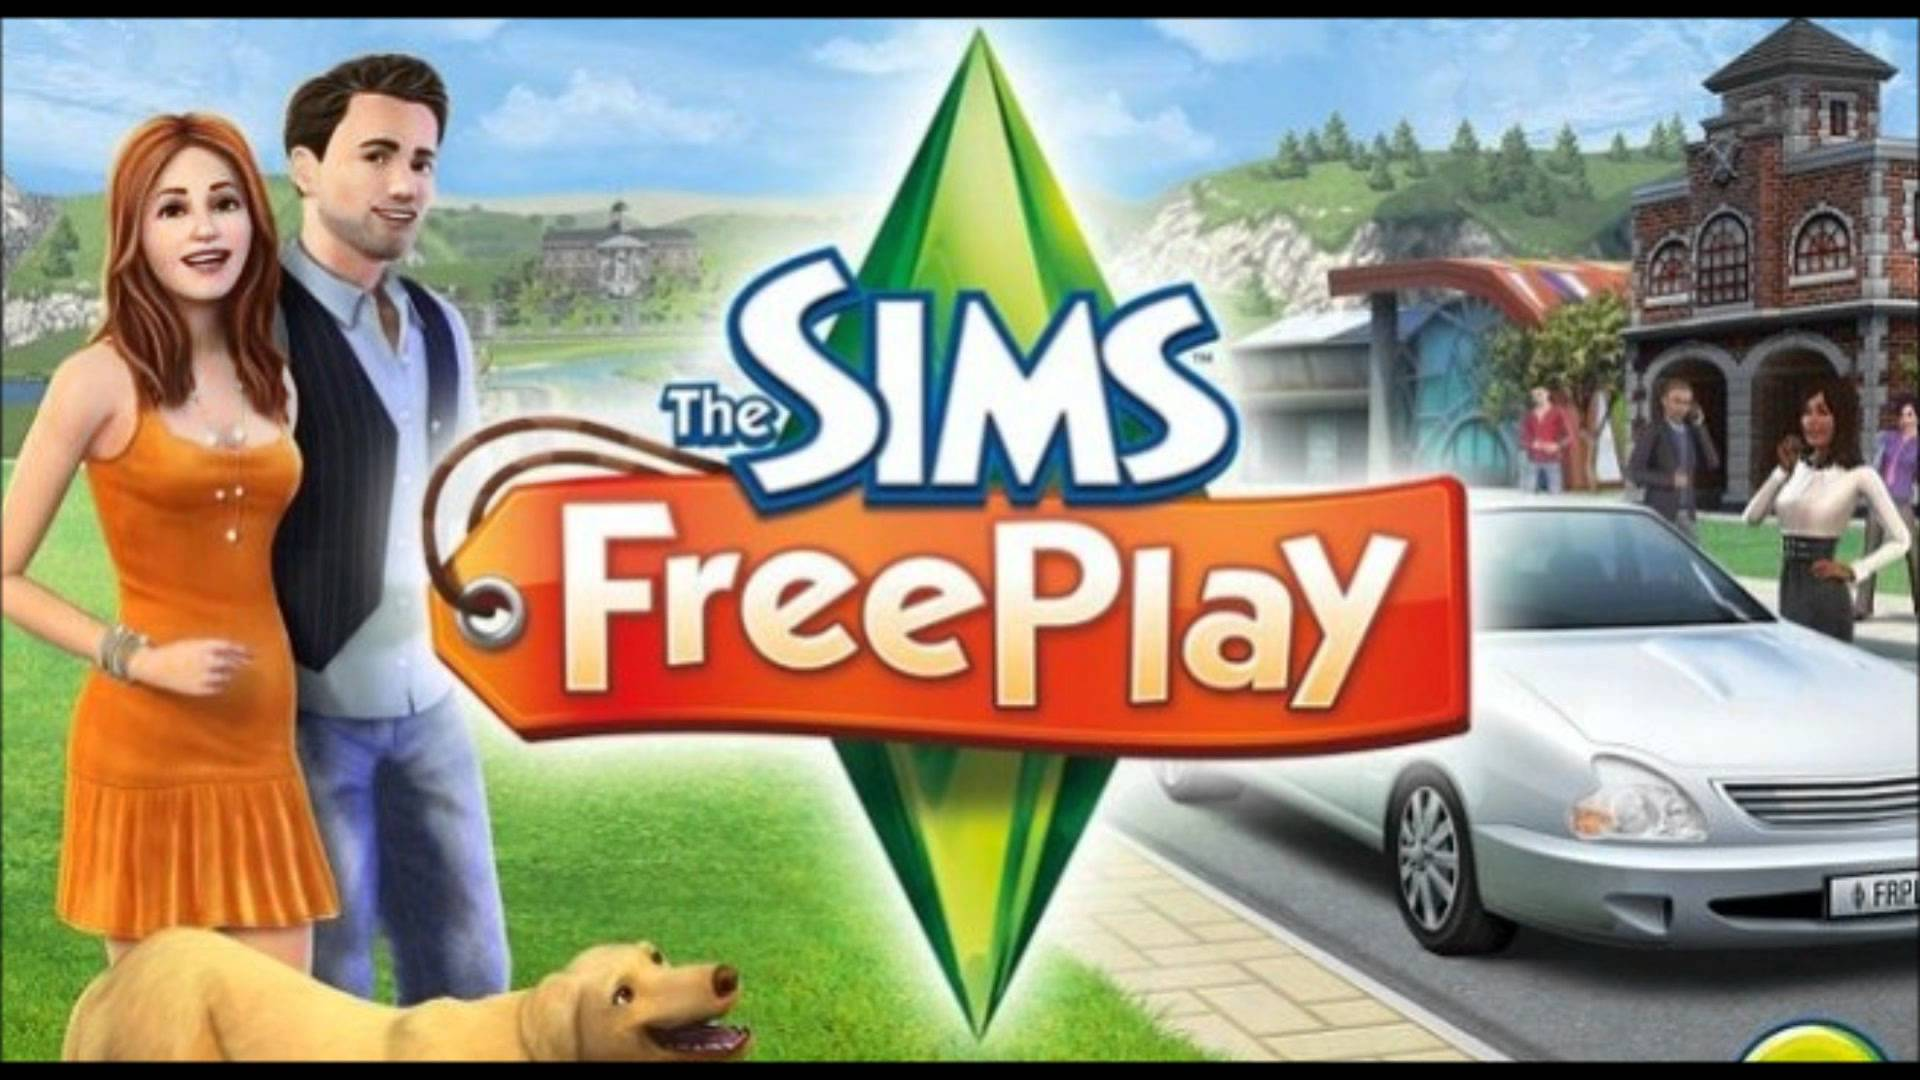 FREEPLAY.TOPTOOLS.XYZ THE SIMS FREEPLAY Lifestyle Points and Simoleons FOR ANDROID IOS PC PLAYSTATION | 100% WORKING METHOD | GET UNLIMITED RESOURCES NOW